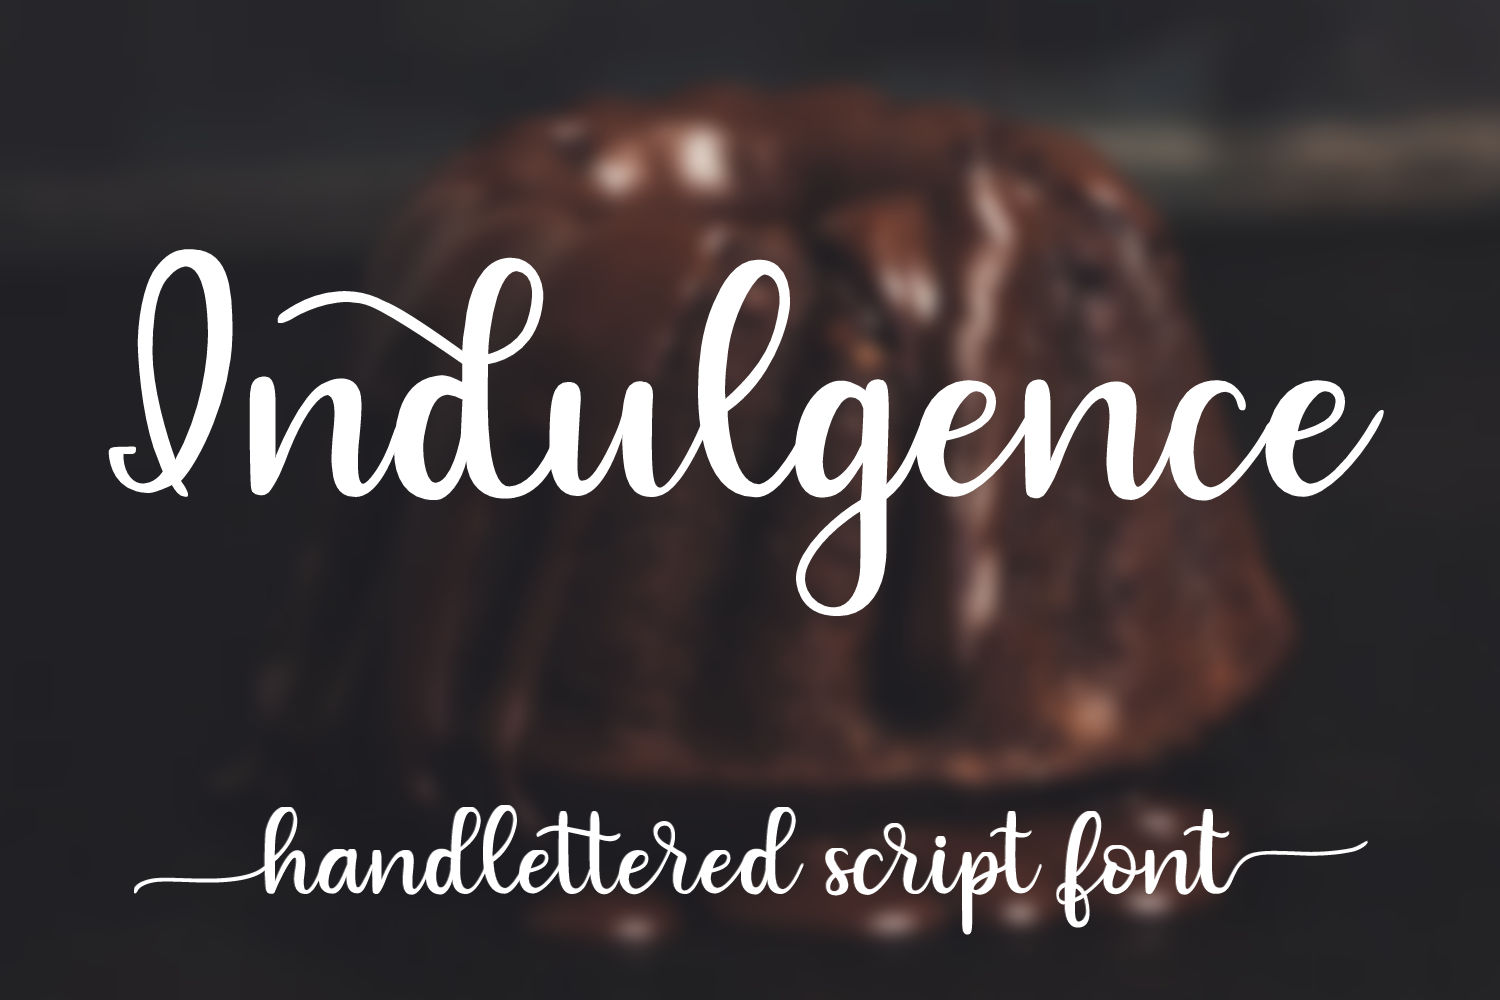 Indulgence - A handlettered script font example image 1